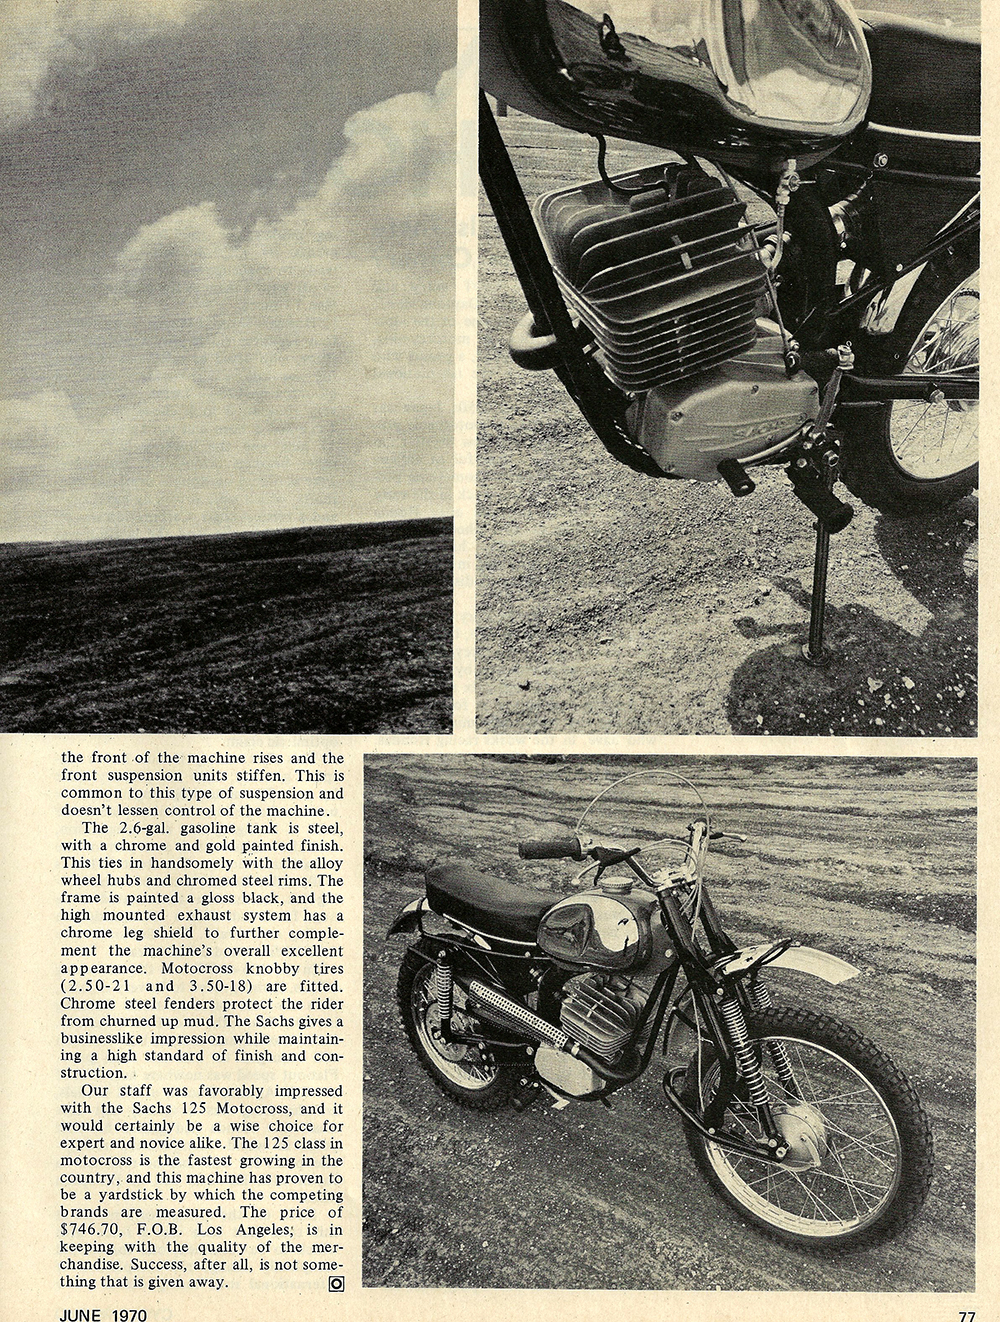 1970 Sachs 125 Motocross road test 02.jpg